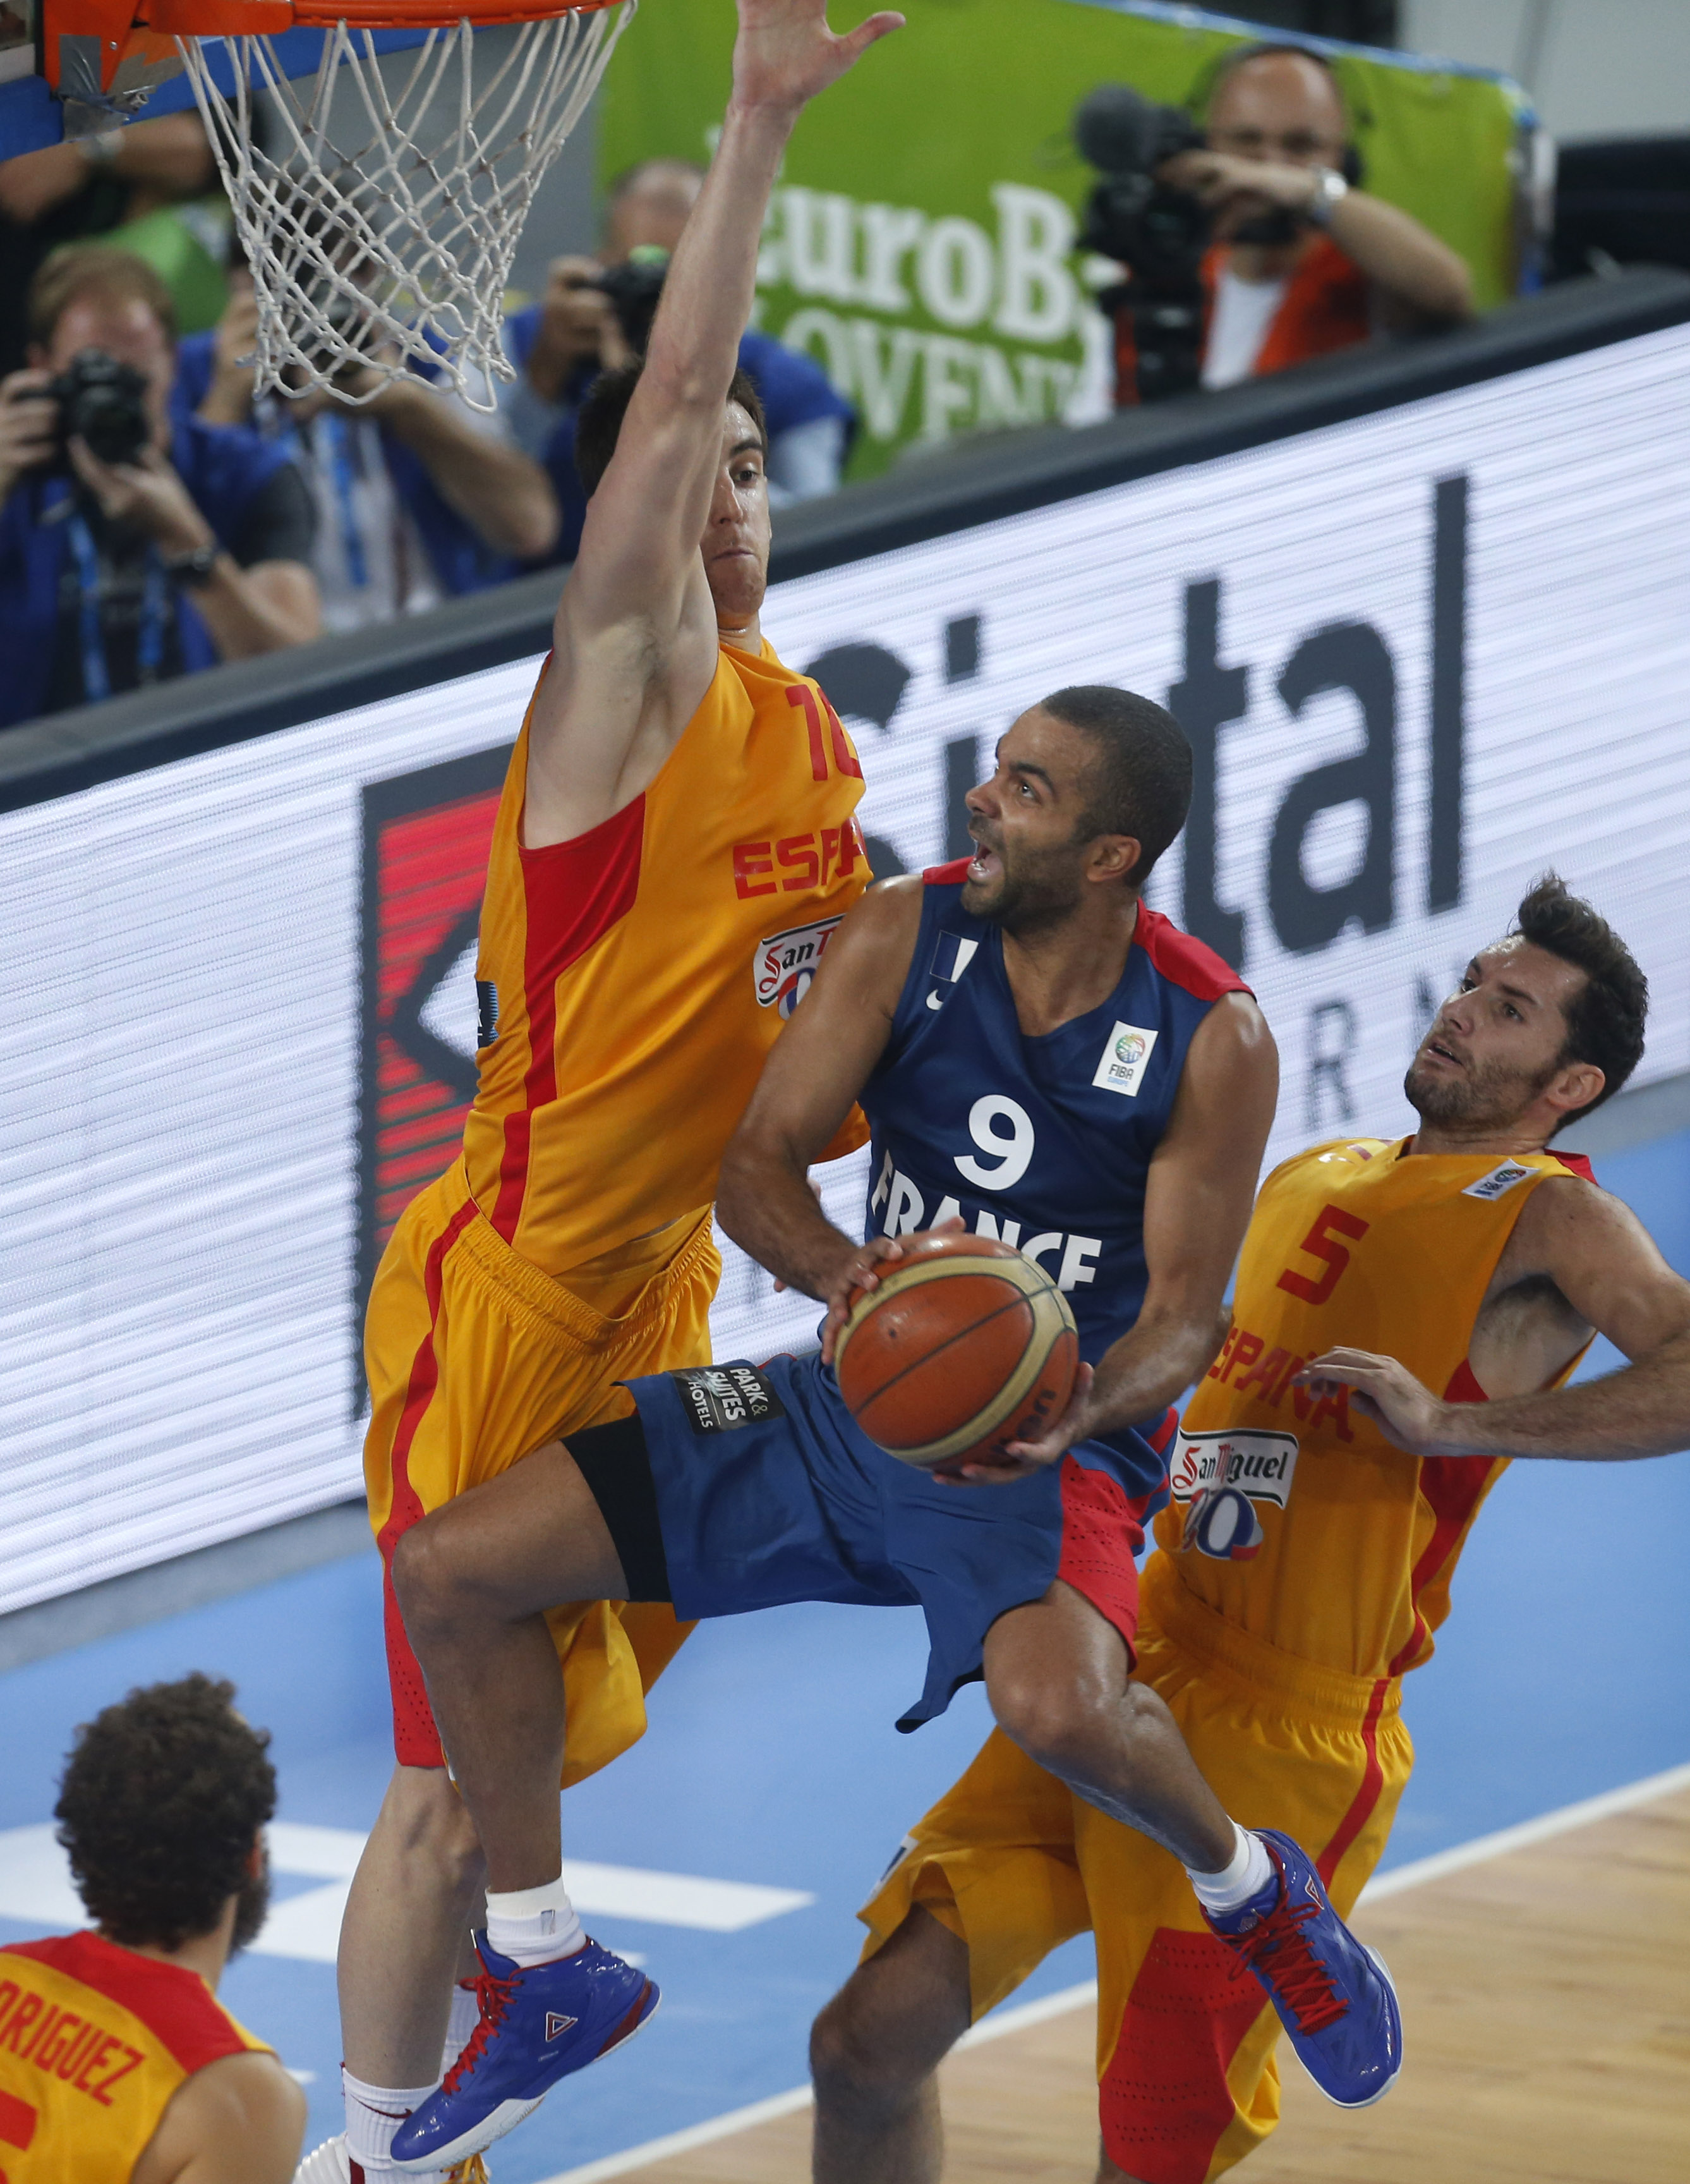 FILE - In this Sept. 20, 2013, file photo, France's Tony Parker, center, challenges for the ball with Spain's Victor Claver, left and Spain's Rudy Fernandez, right, during their EuroBasket European Basketball Championship semifinal match in Ljubljana, Slo